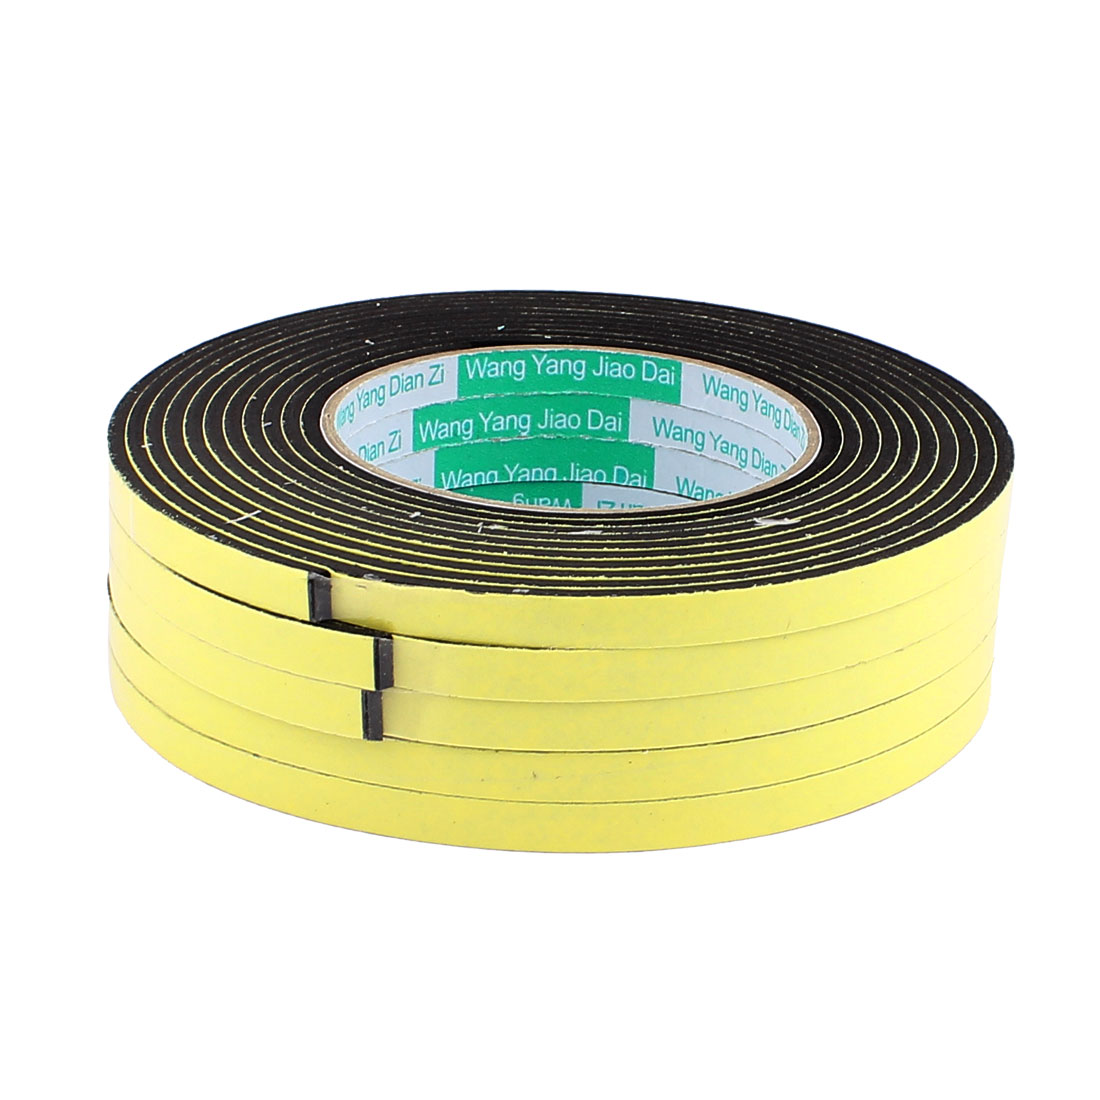 5 Pcs 0.8CM Width 4M Length 3MM Thick Single Sided Sealing Shockproof Sponge Tape